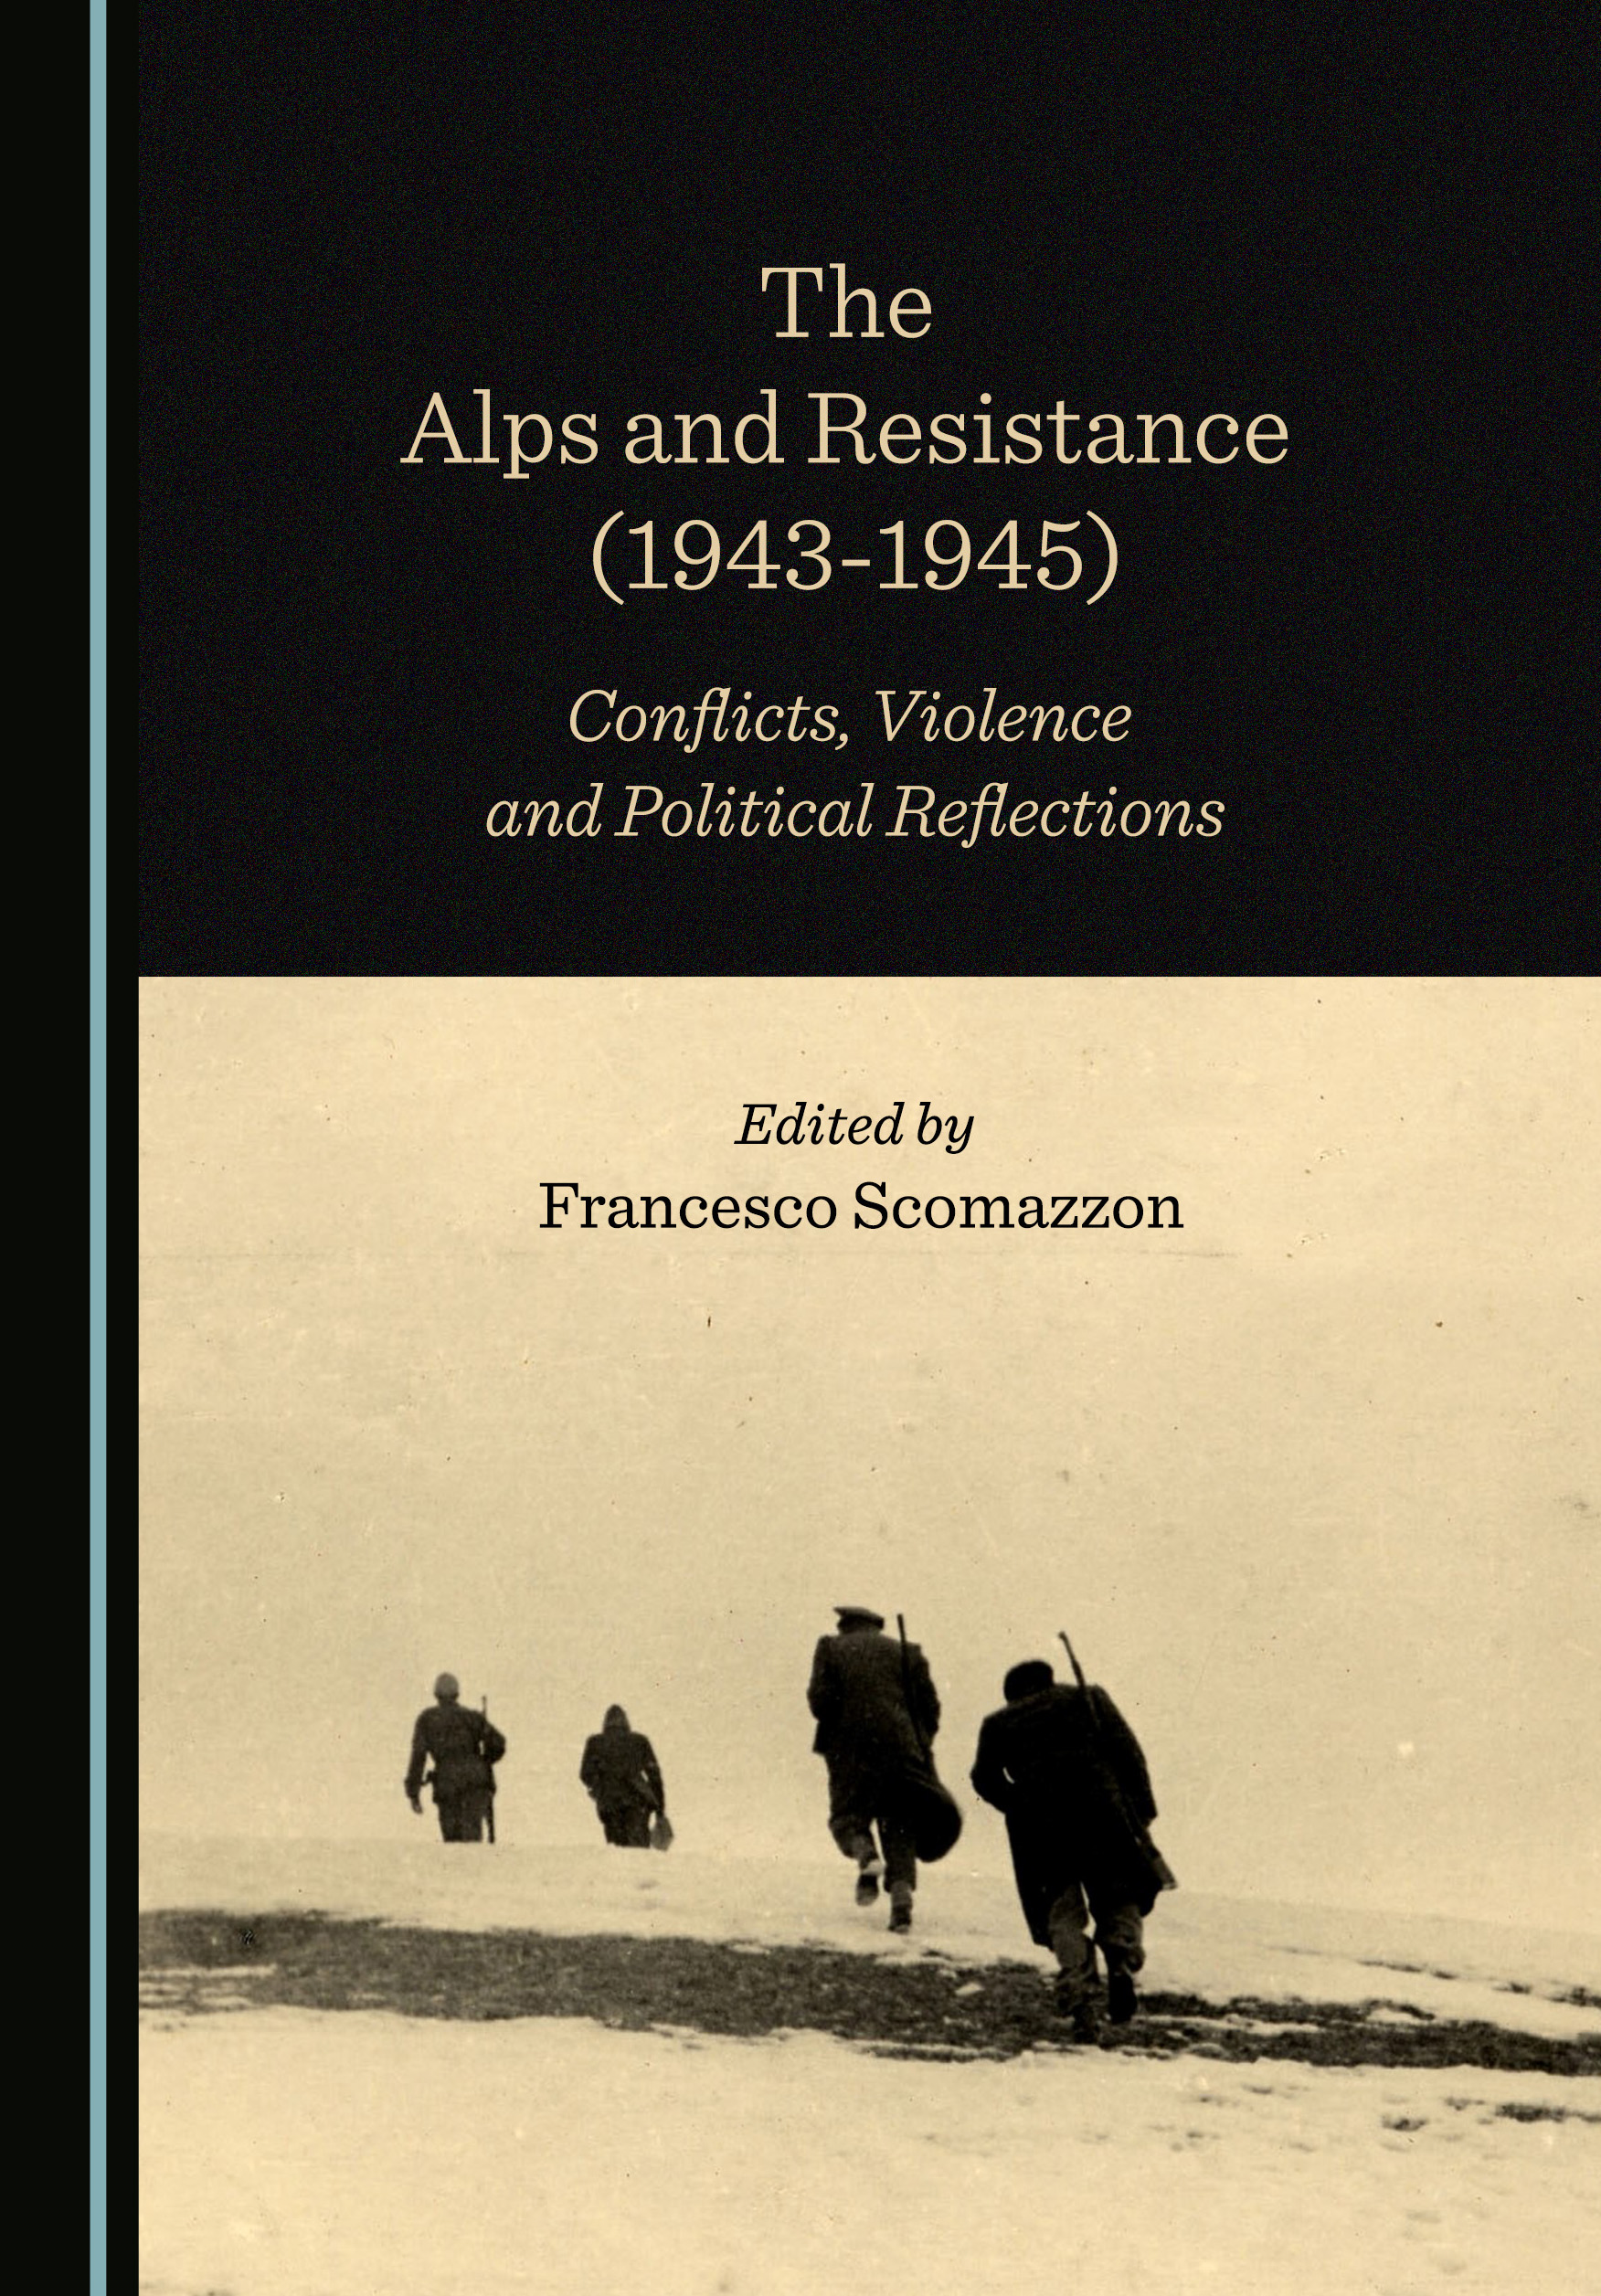 The Alps and Resistance (1943-1945): Conflicts, Violence and Political Reflections